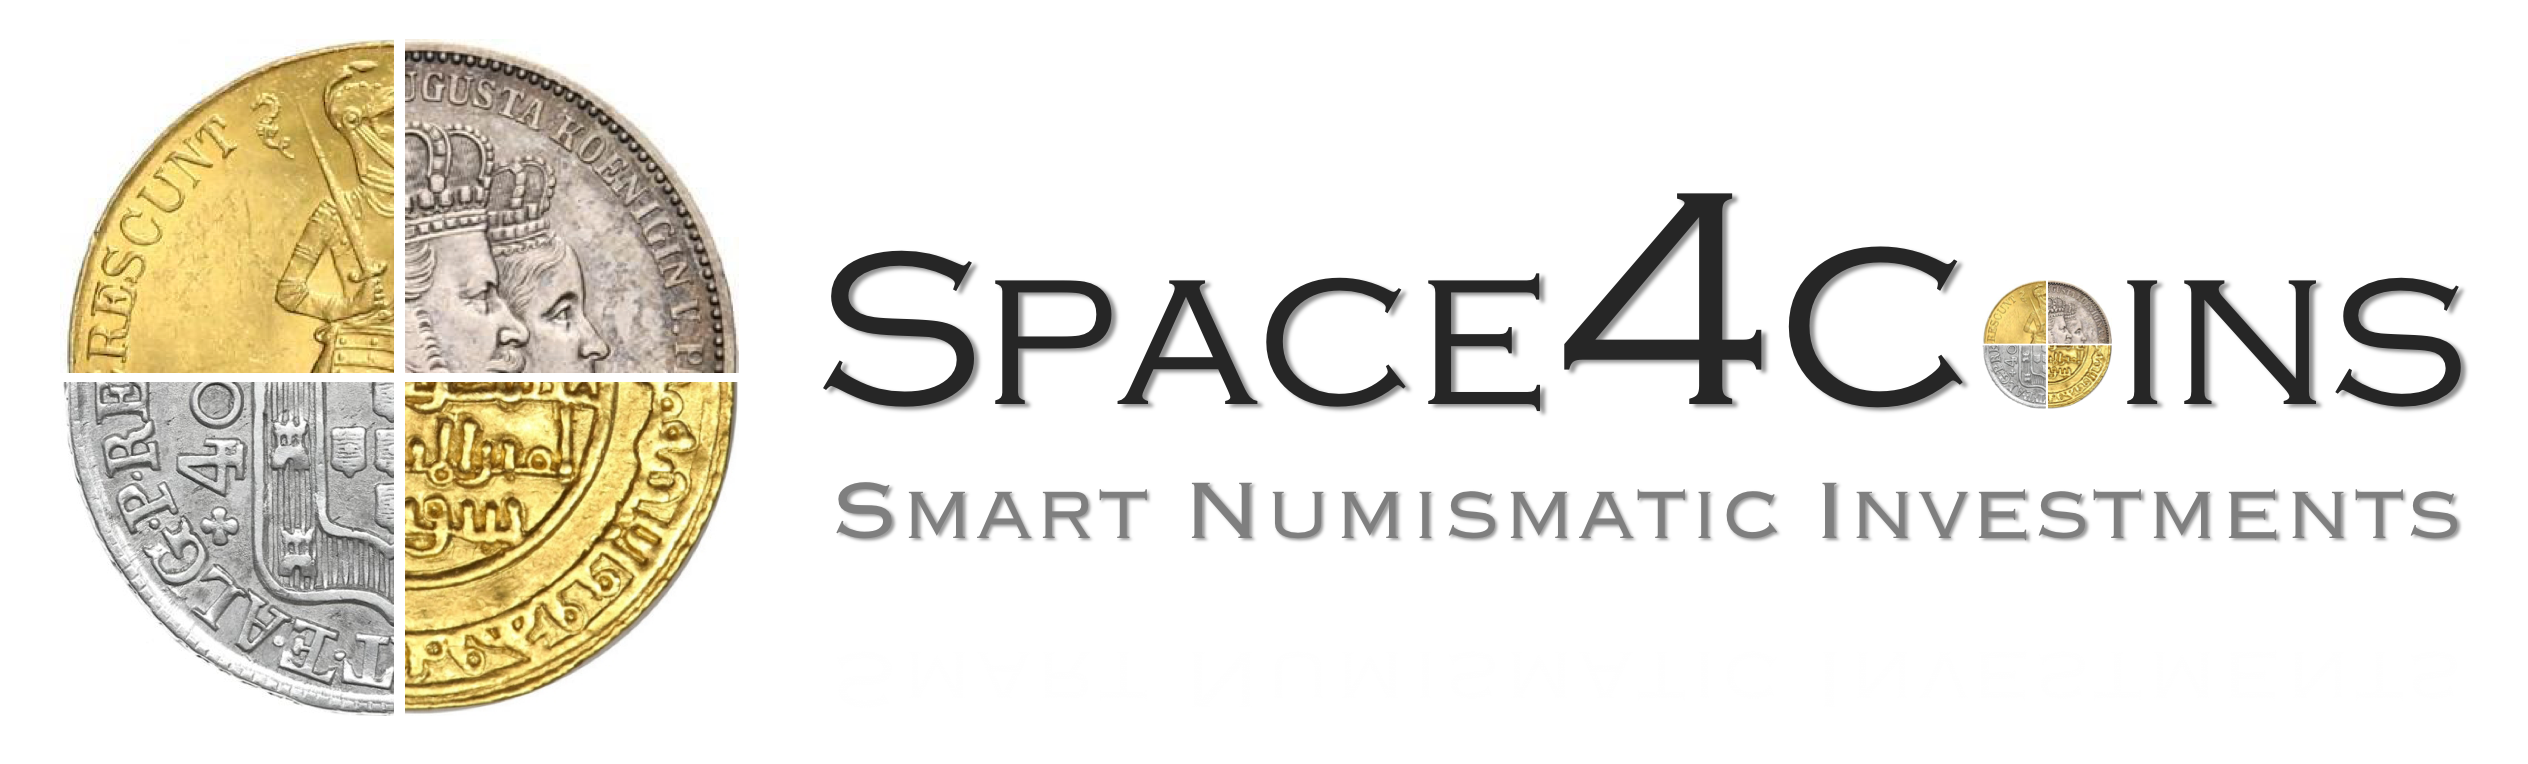 Space4coins